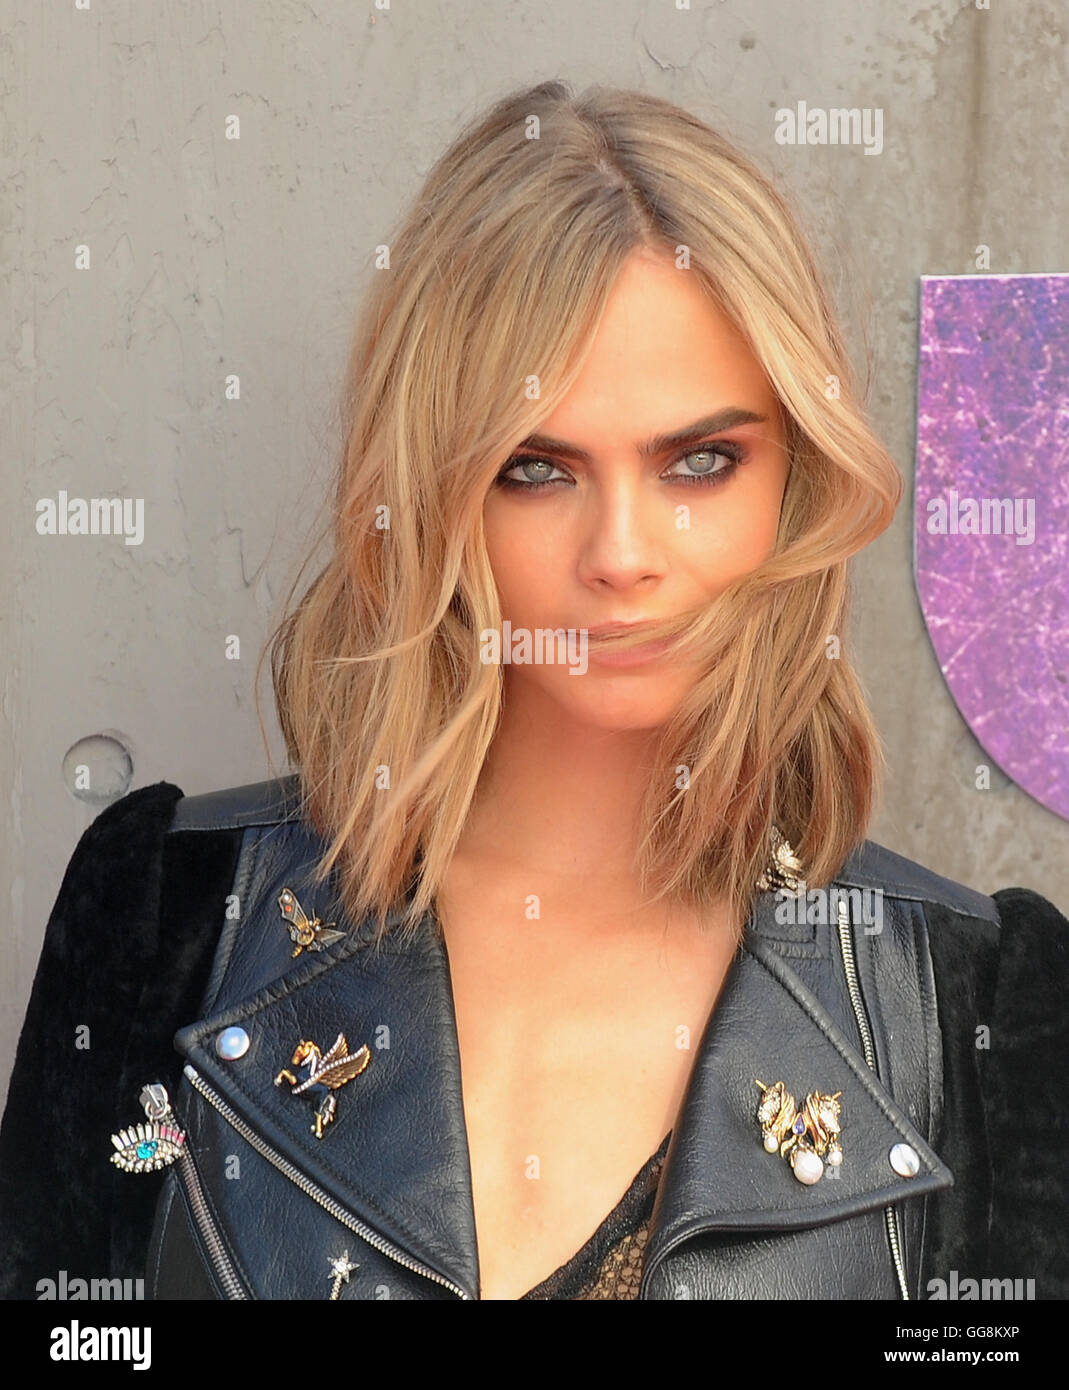 London, UK, UK. 3rd Aug, 2016. CARA DELEVINGNE attends the European Premiere of 'Suicide Squad' at Odeon - Stock Image